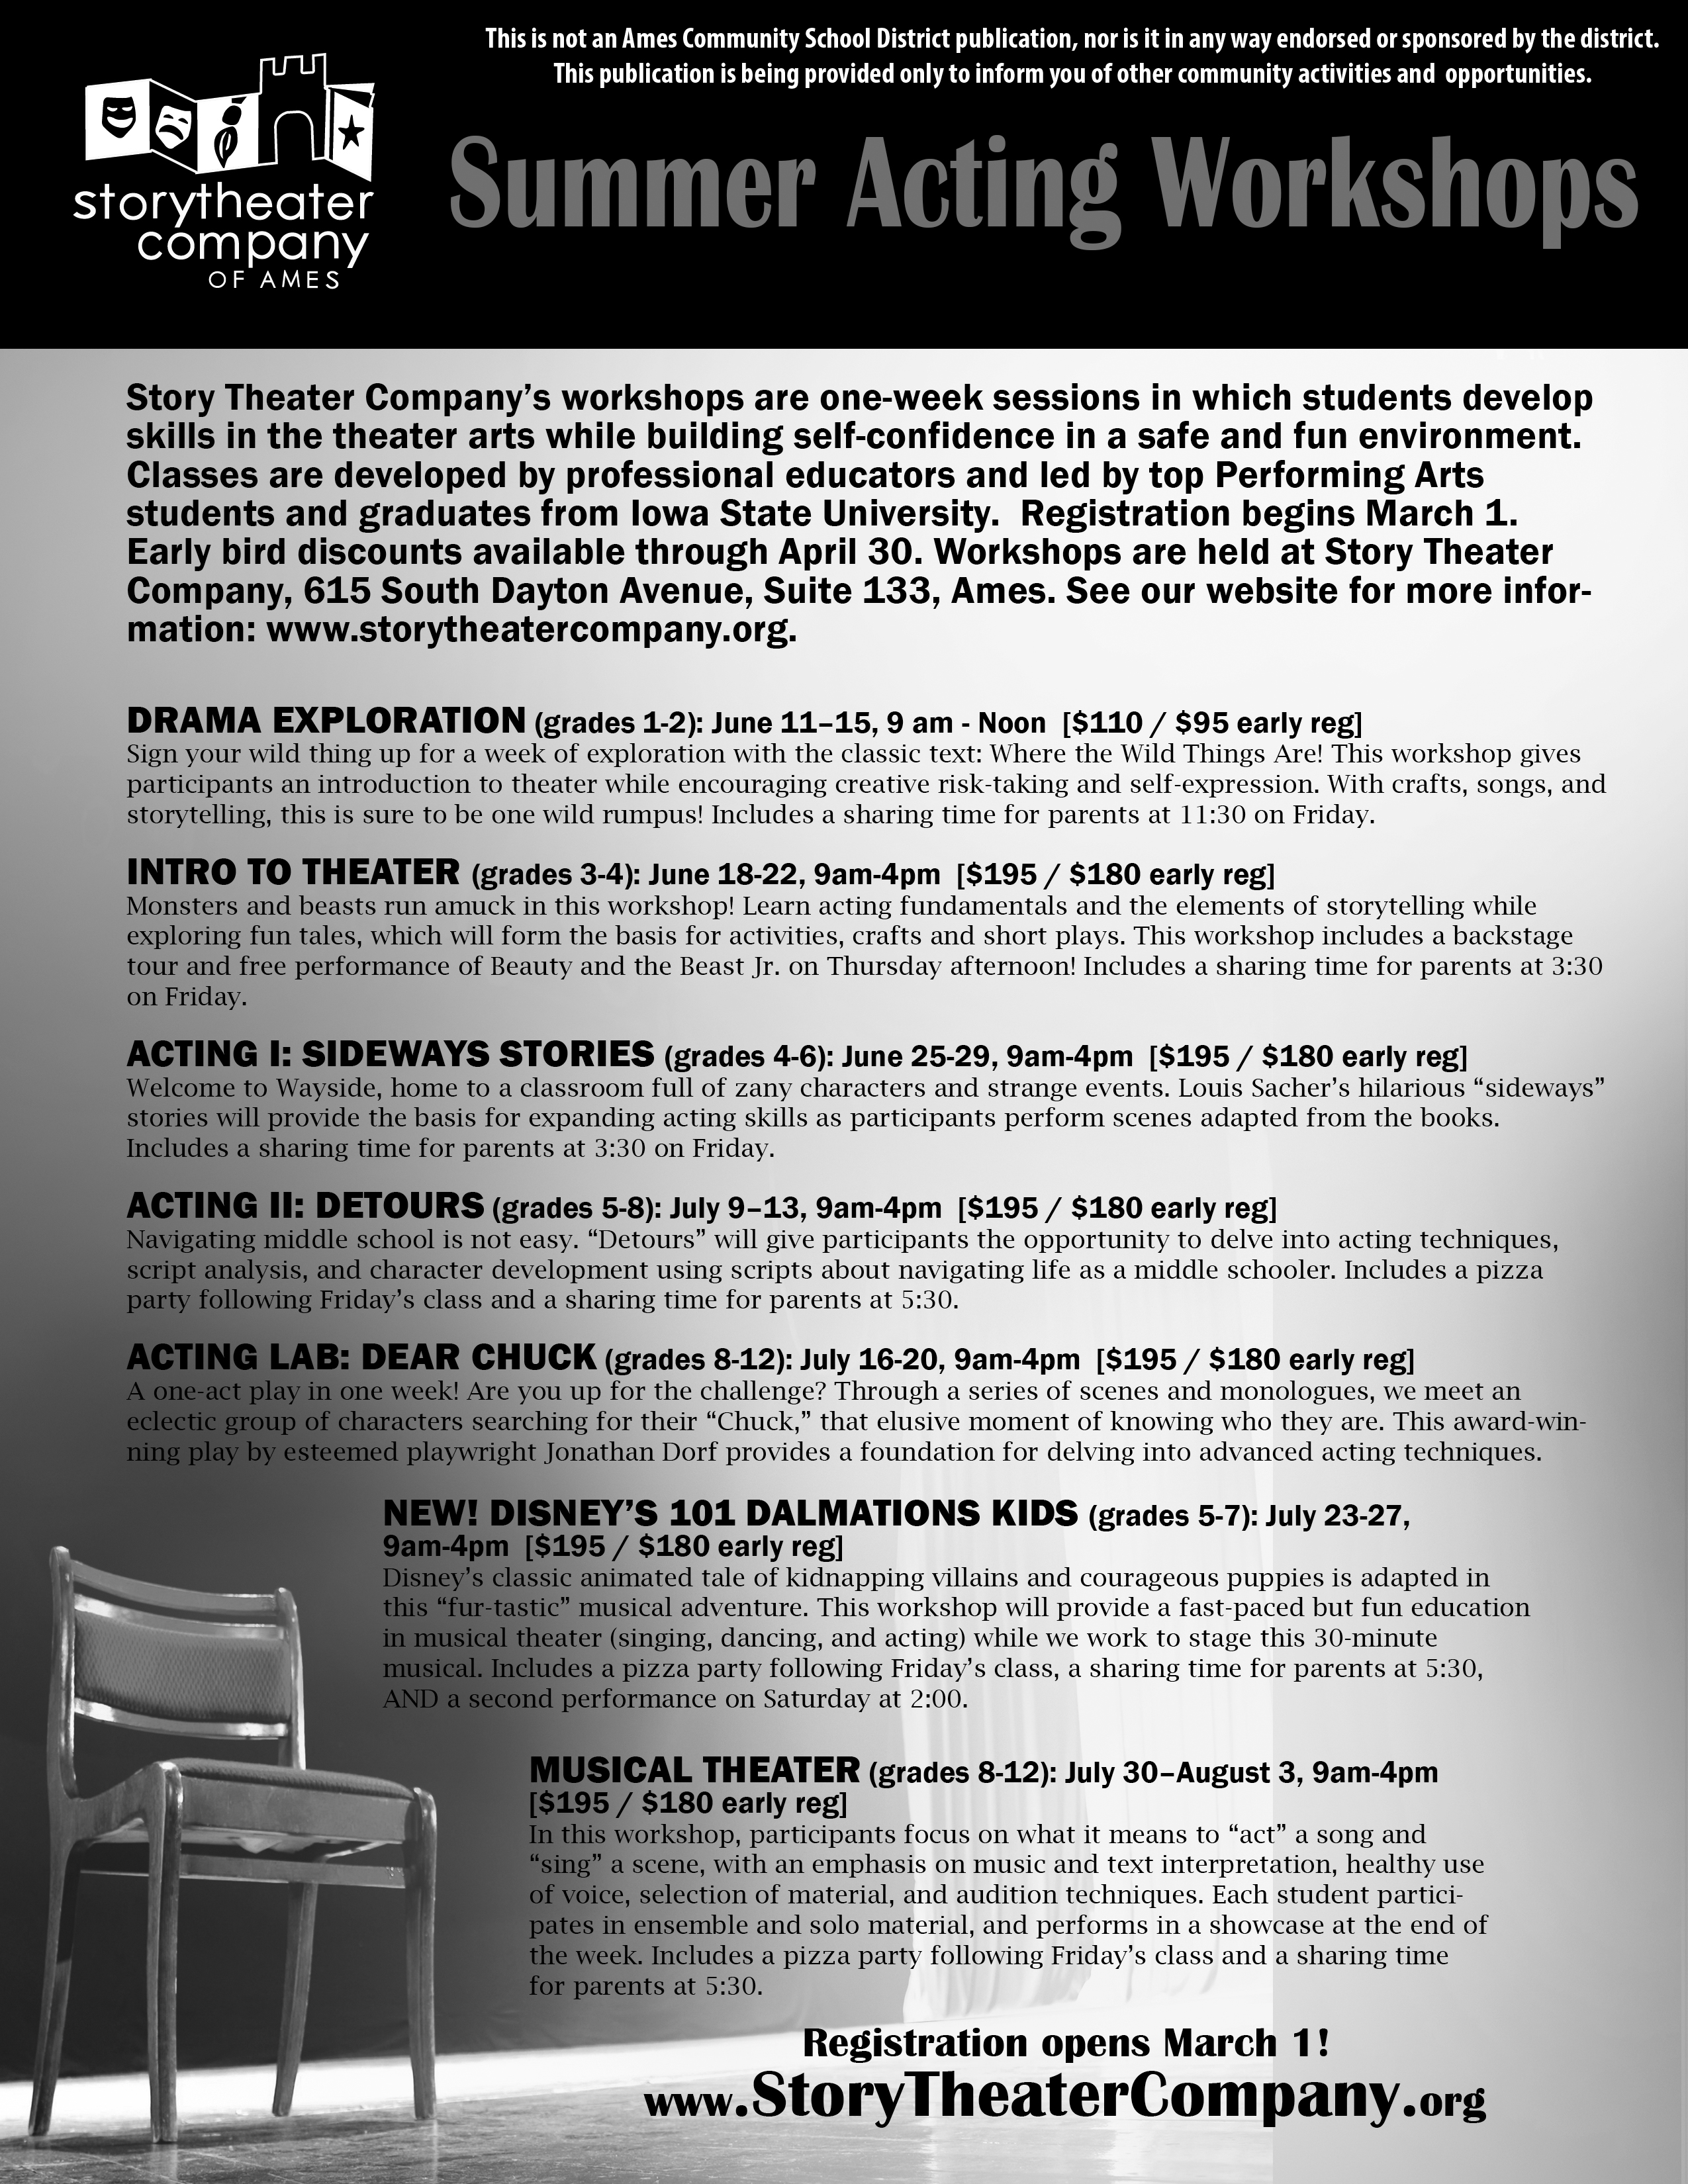 Story Theater Company Summer Workshops - Ames Community School District